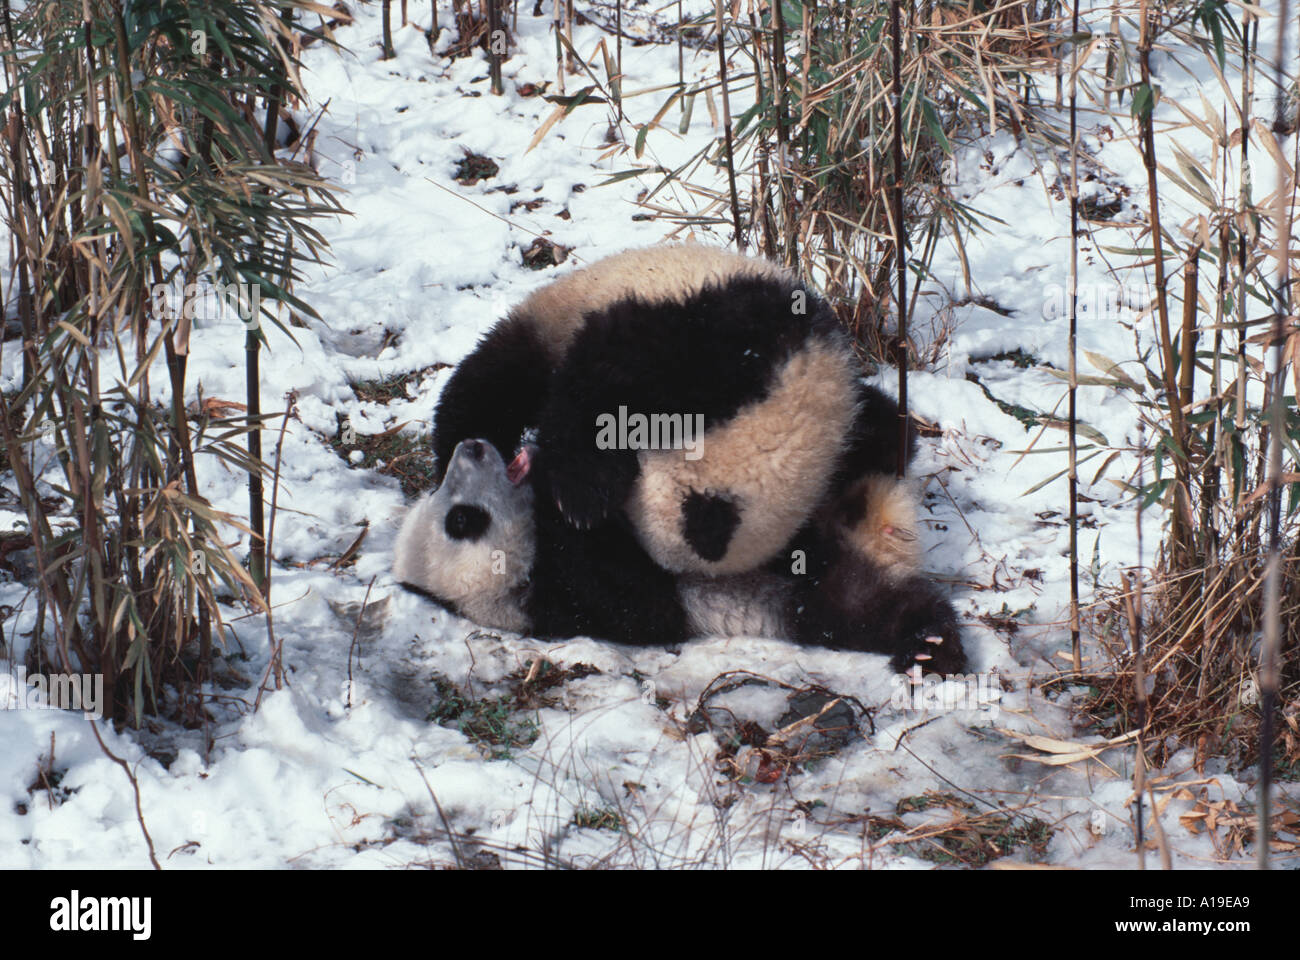 Panda cubs playing in snow - photo#9